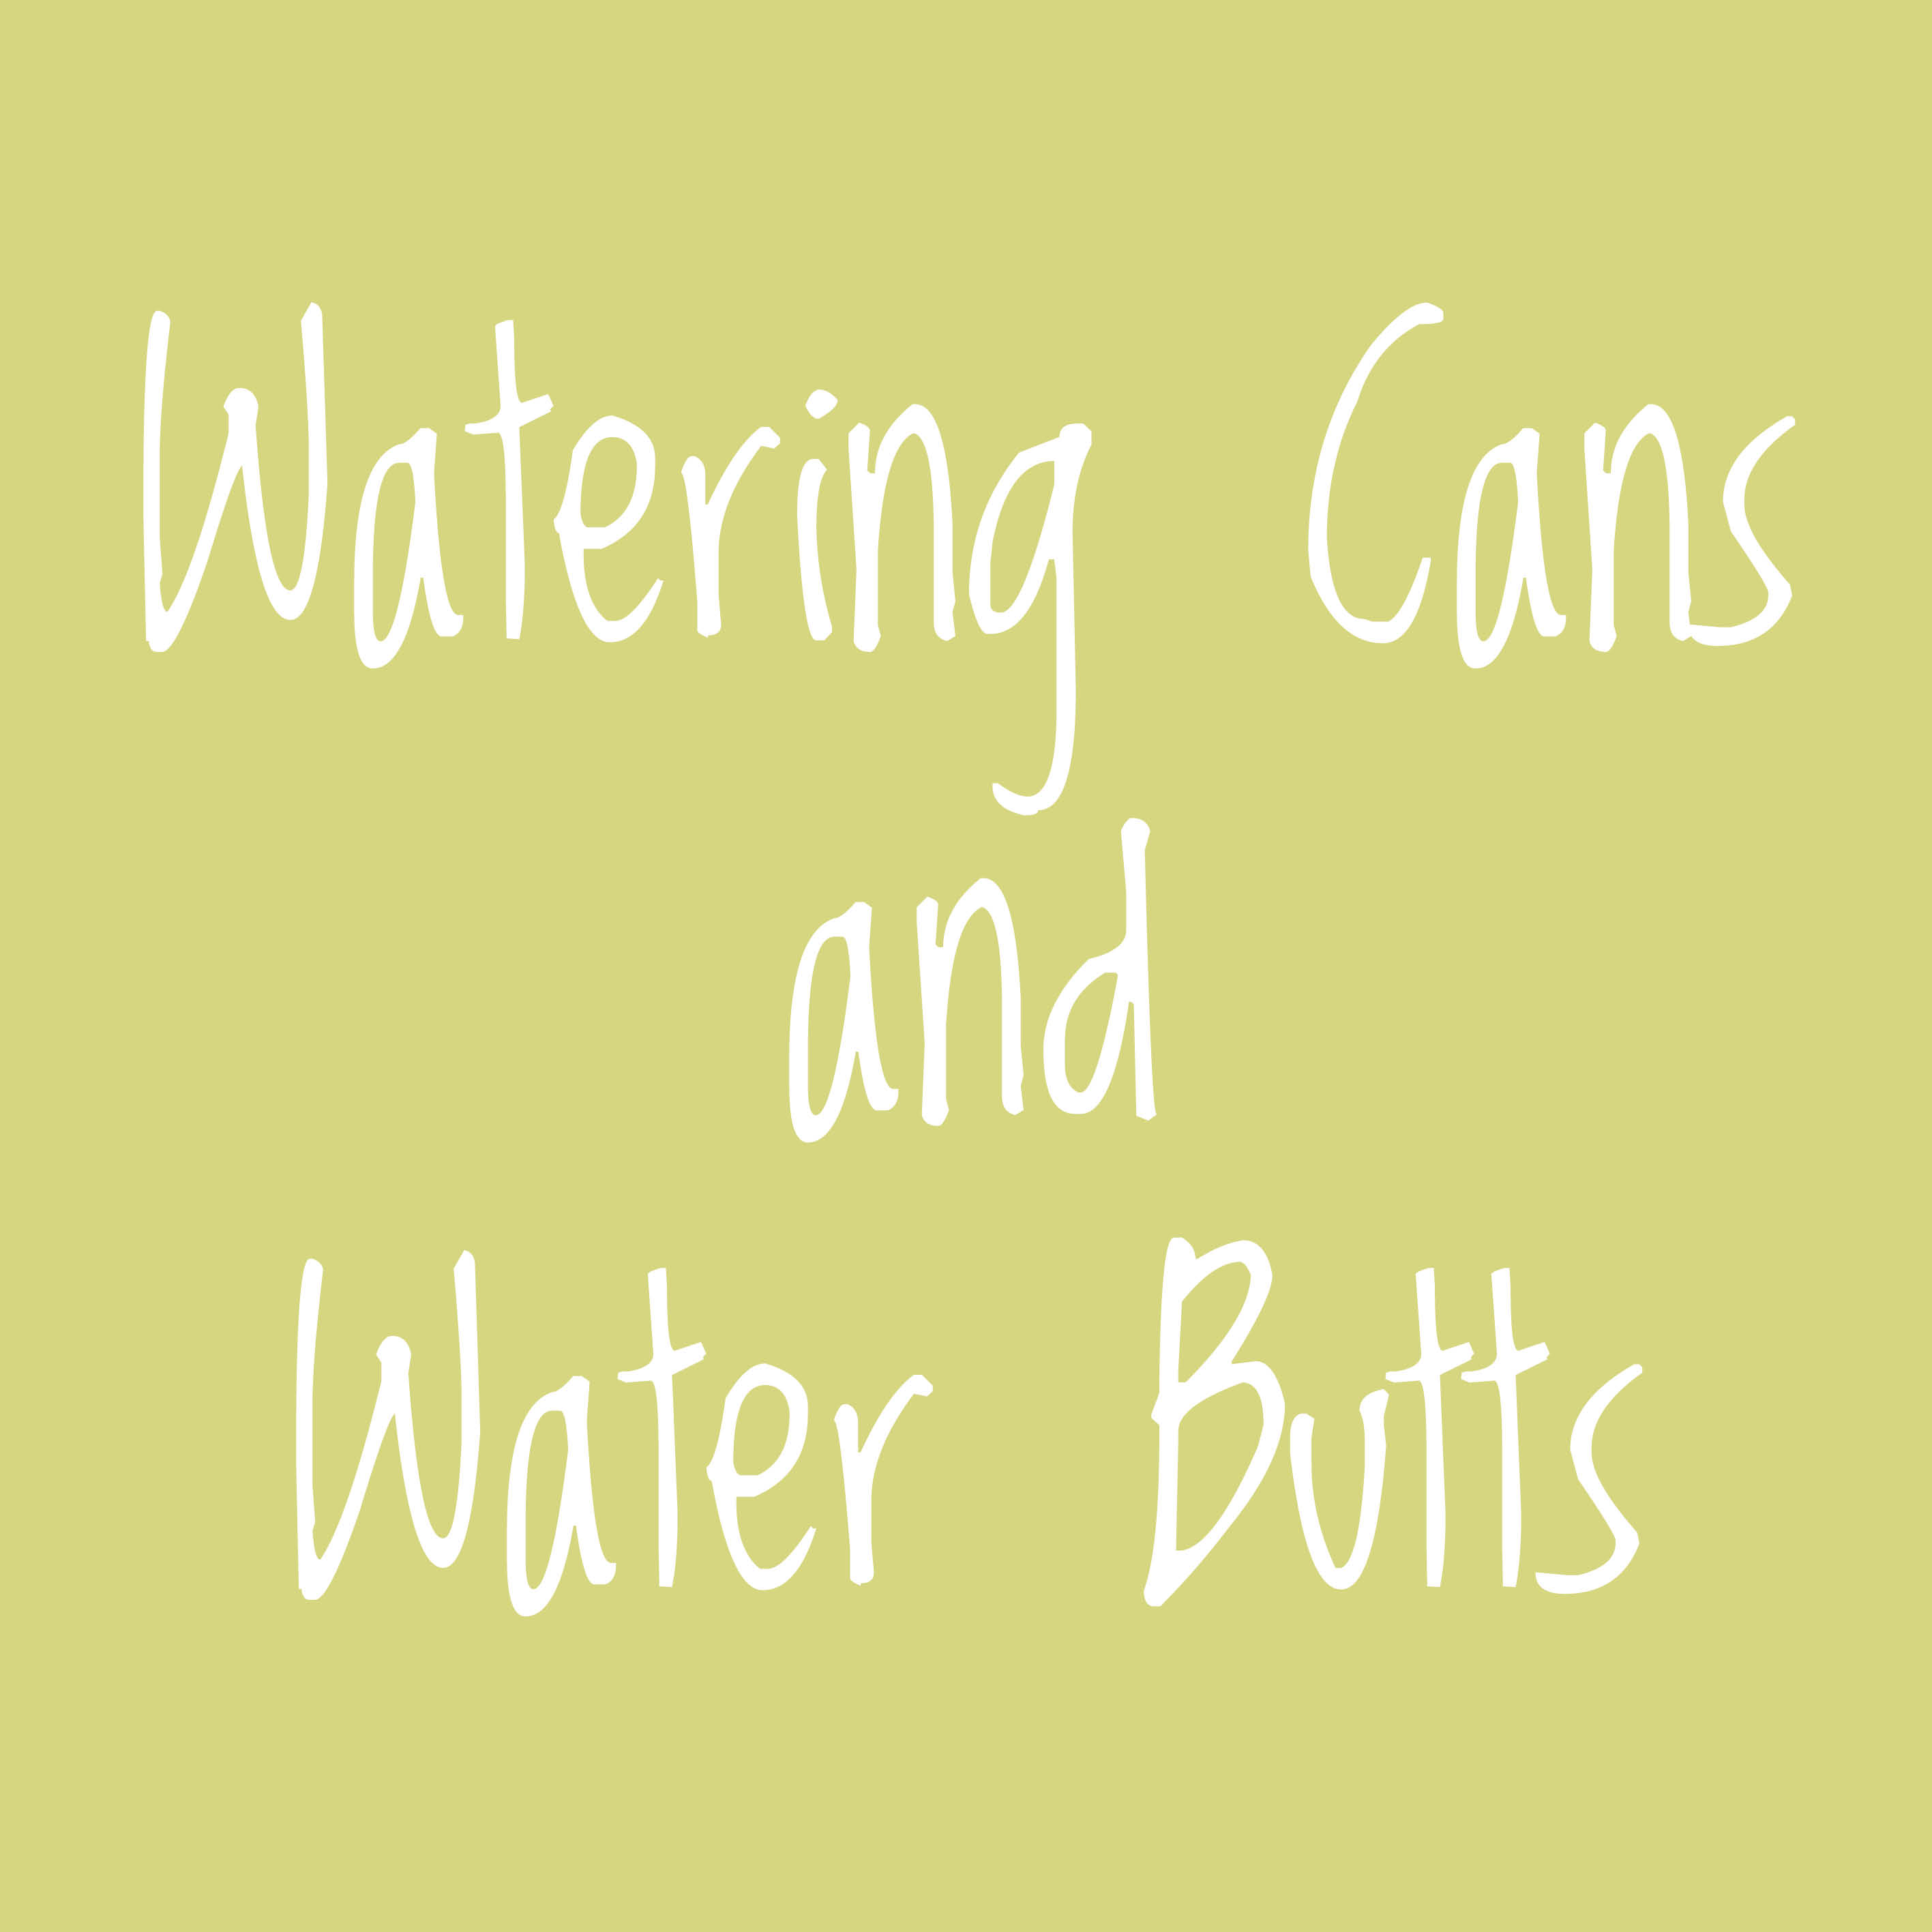 Watering Cans & Water Butts